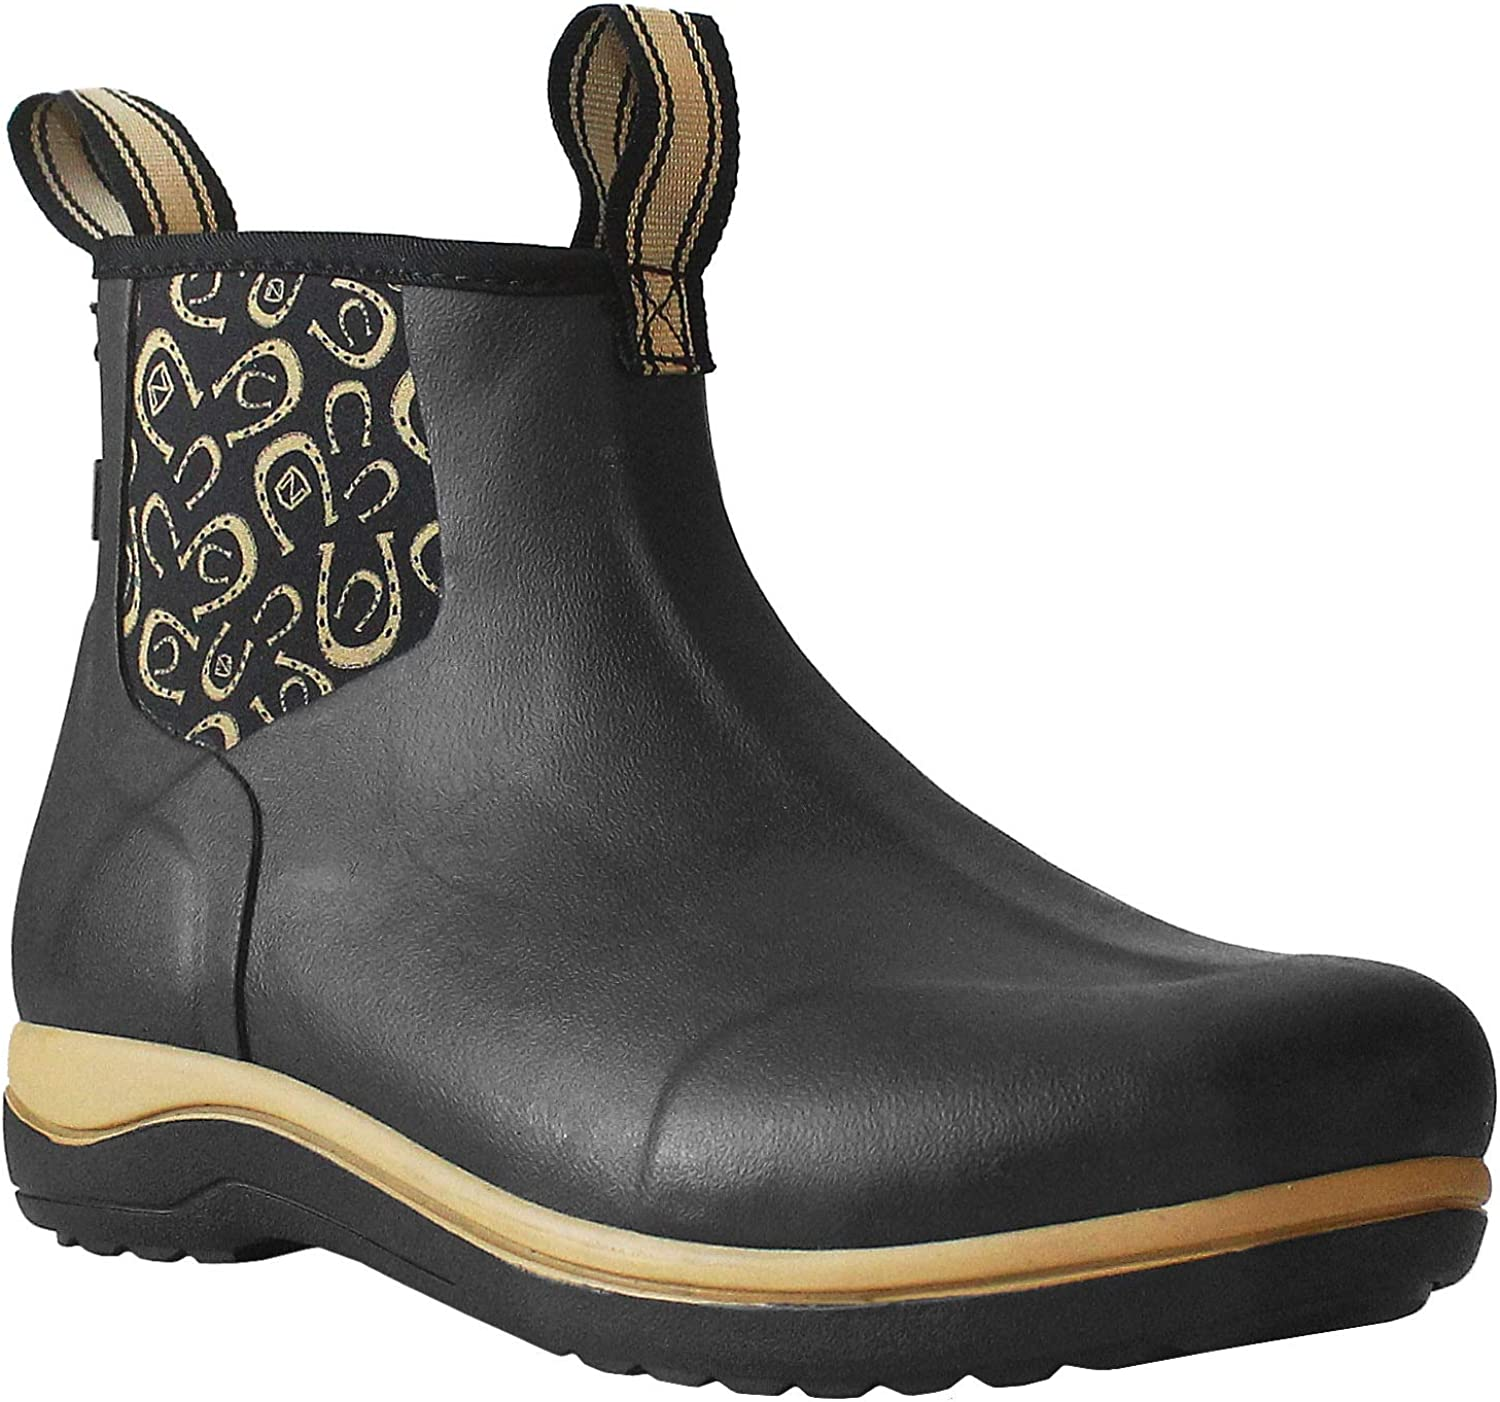 Stable Yard Wellies Ankle Boots